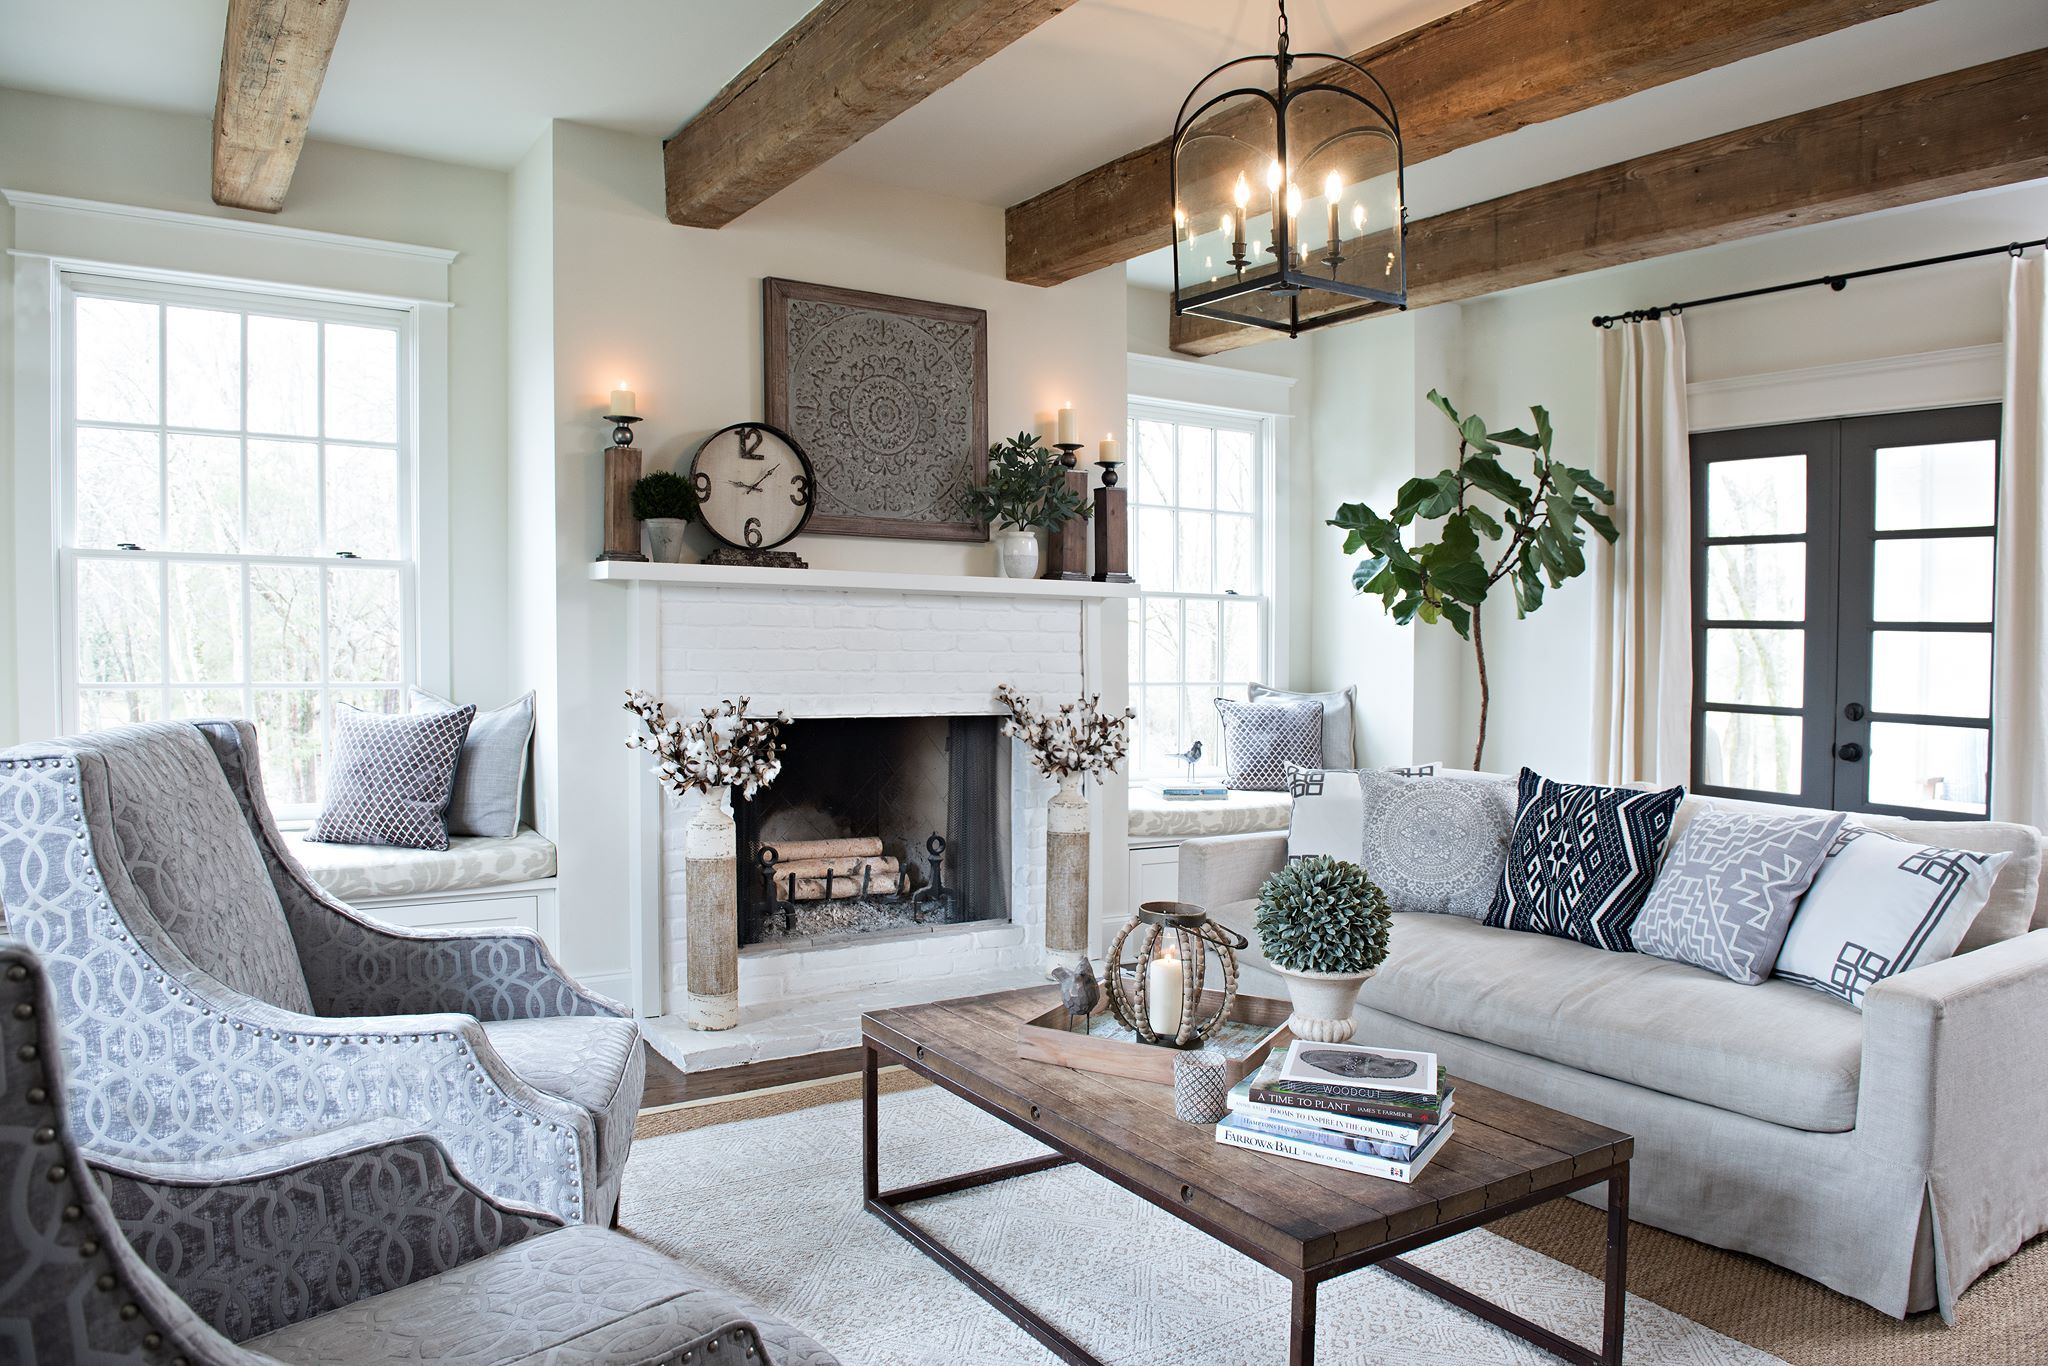 Pin by Laura Arras George on Decorating | Pinterest | Tv placement ...